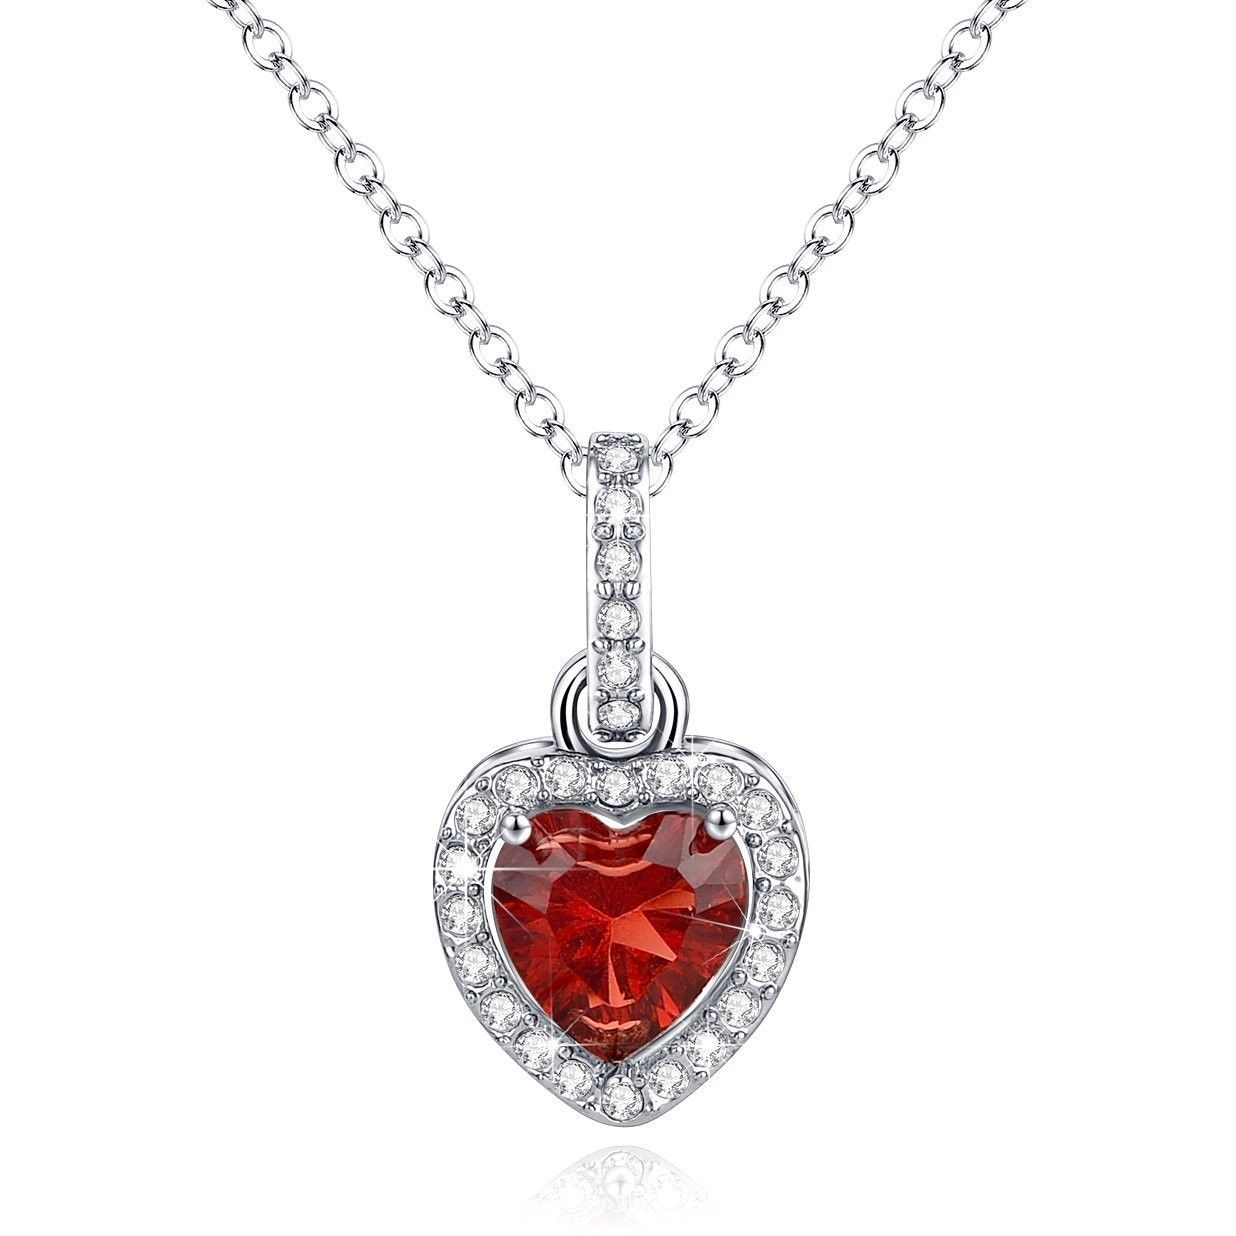 Love Heart Necklace Pendant Simulated Garnet Birthstone January Valentine's Gif